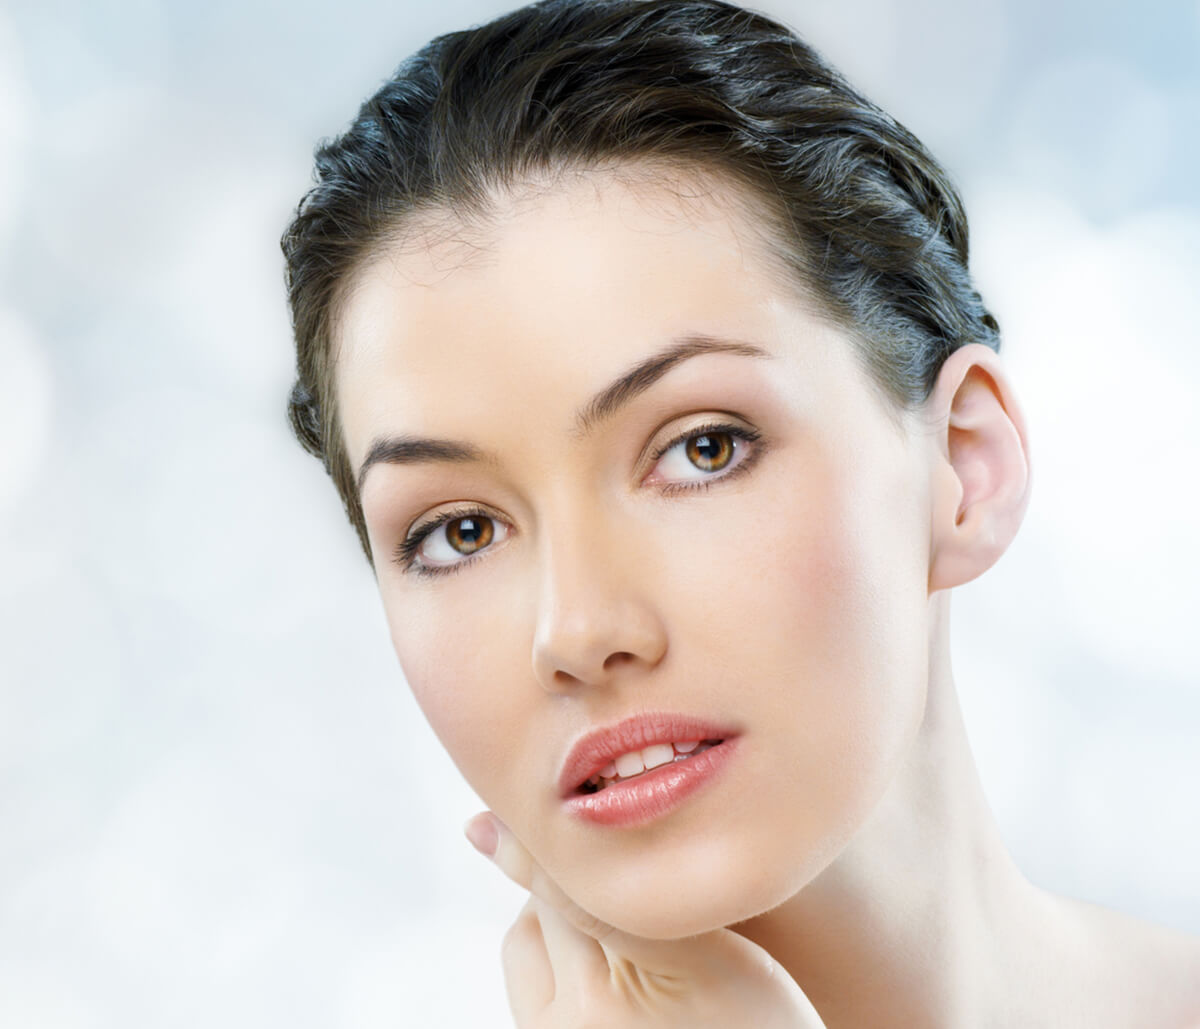 In Chagrin Falls, OH Area Provider Offers Belotero Filler as a Cosmetic Injection